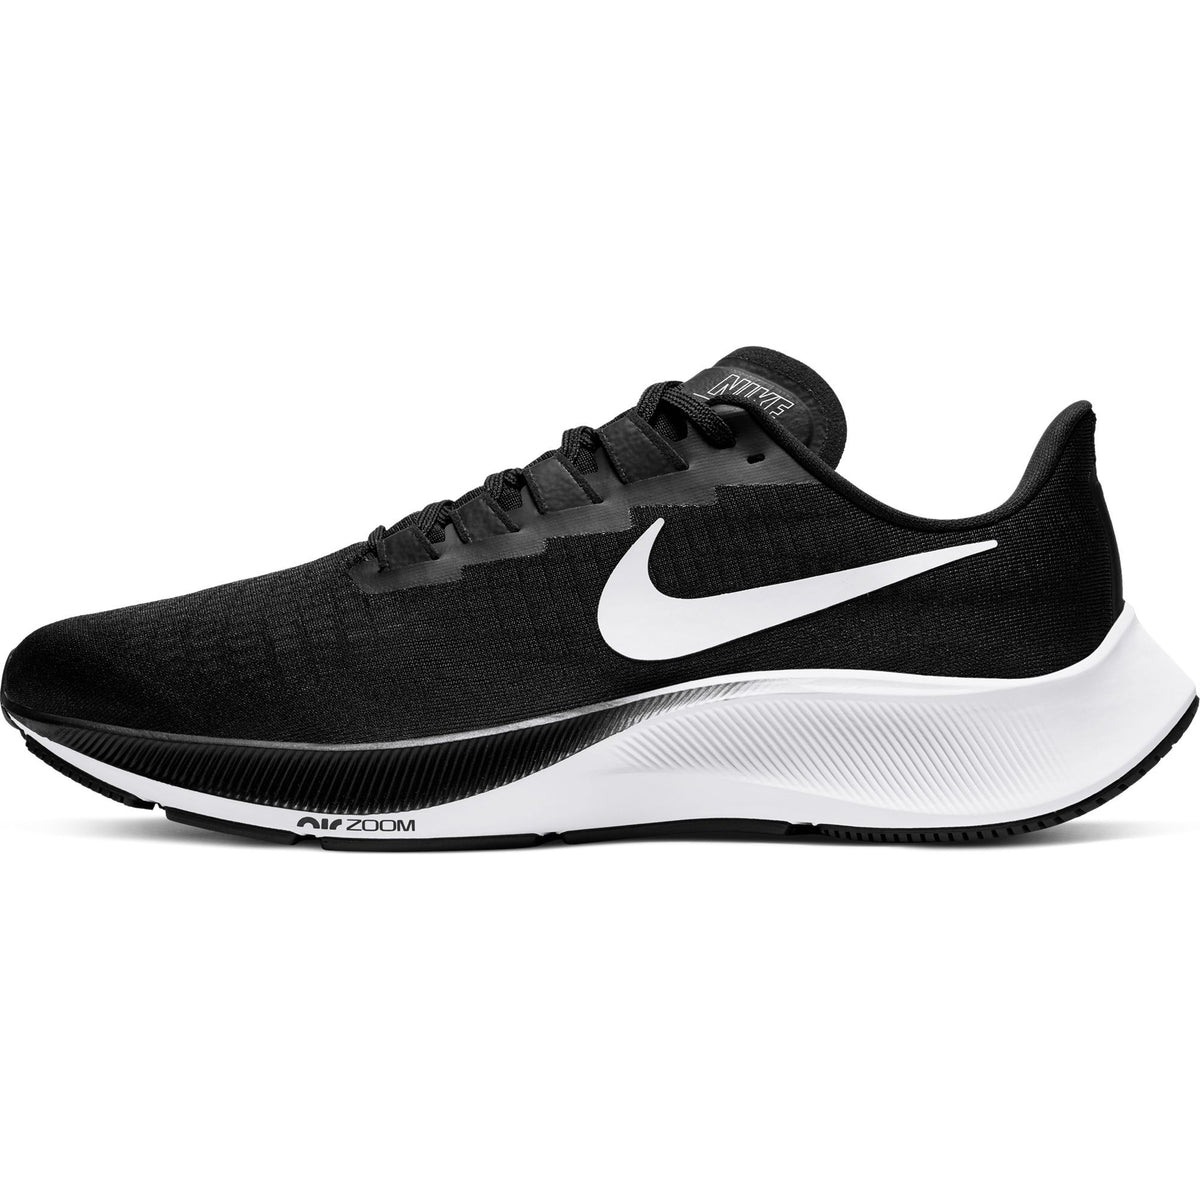 Nike Air Zoom Pegasus 37 Mens - Sole Motive